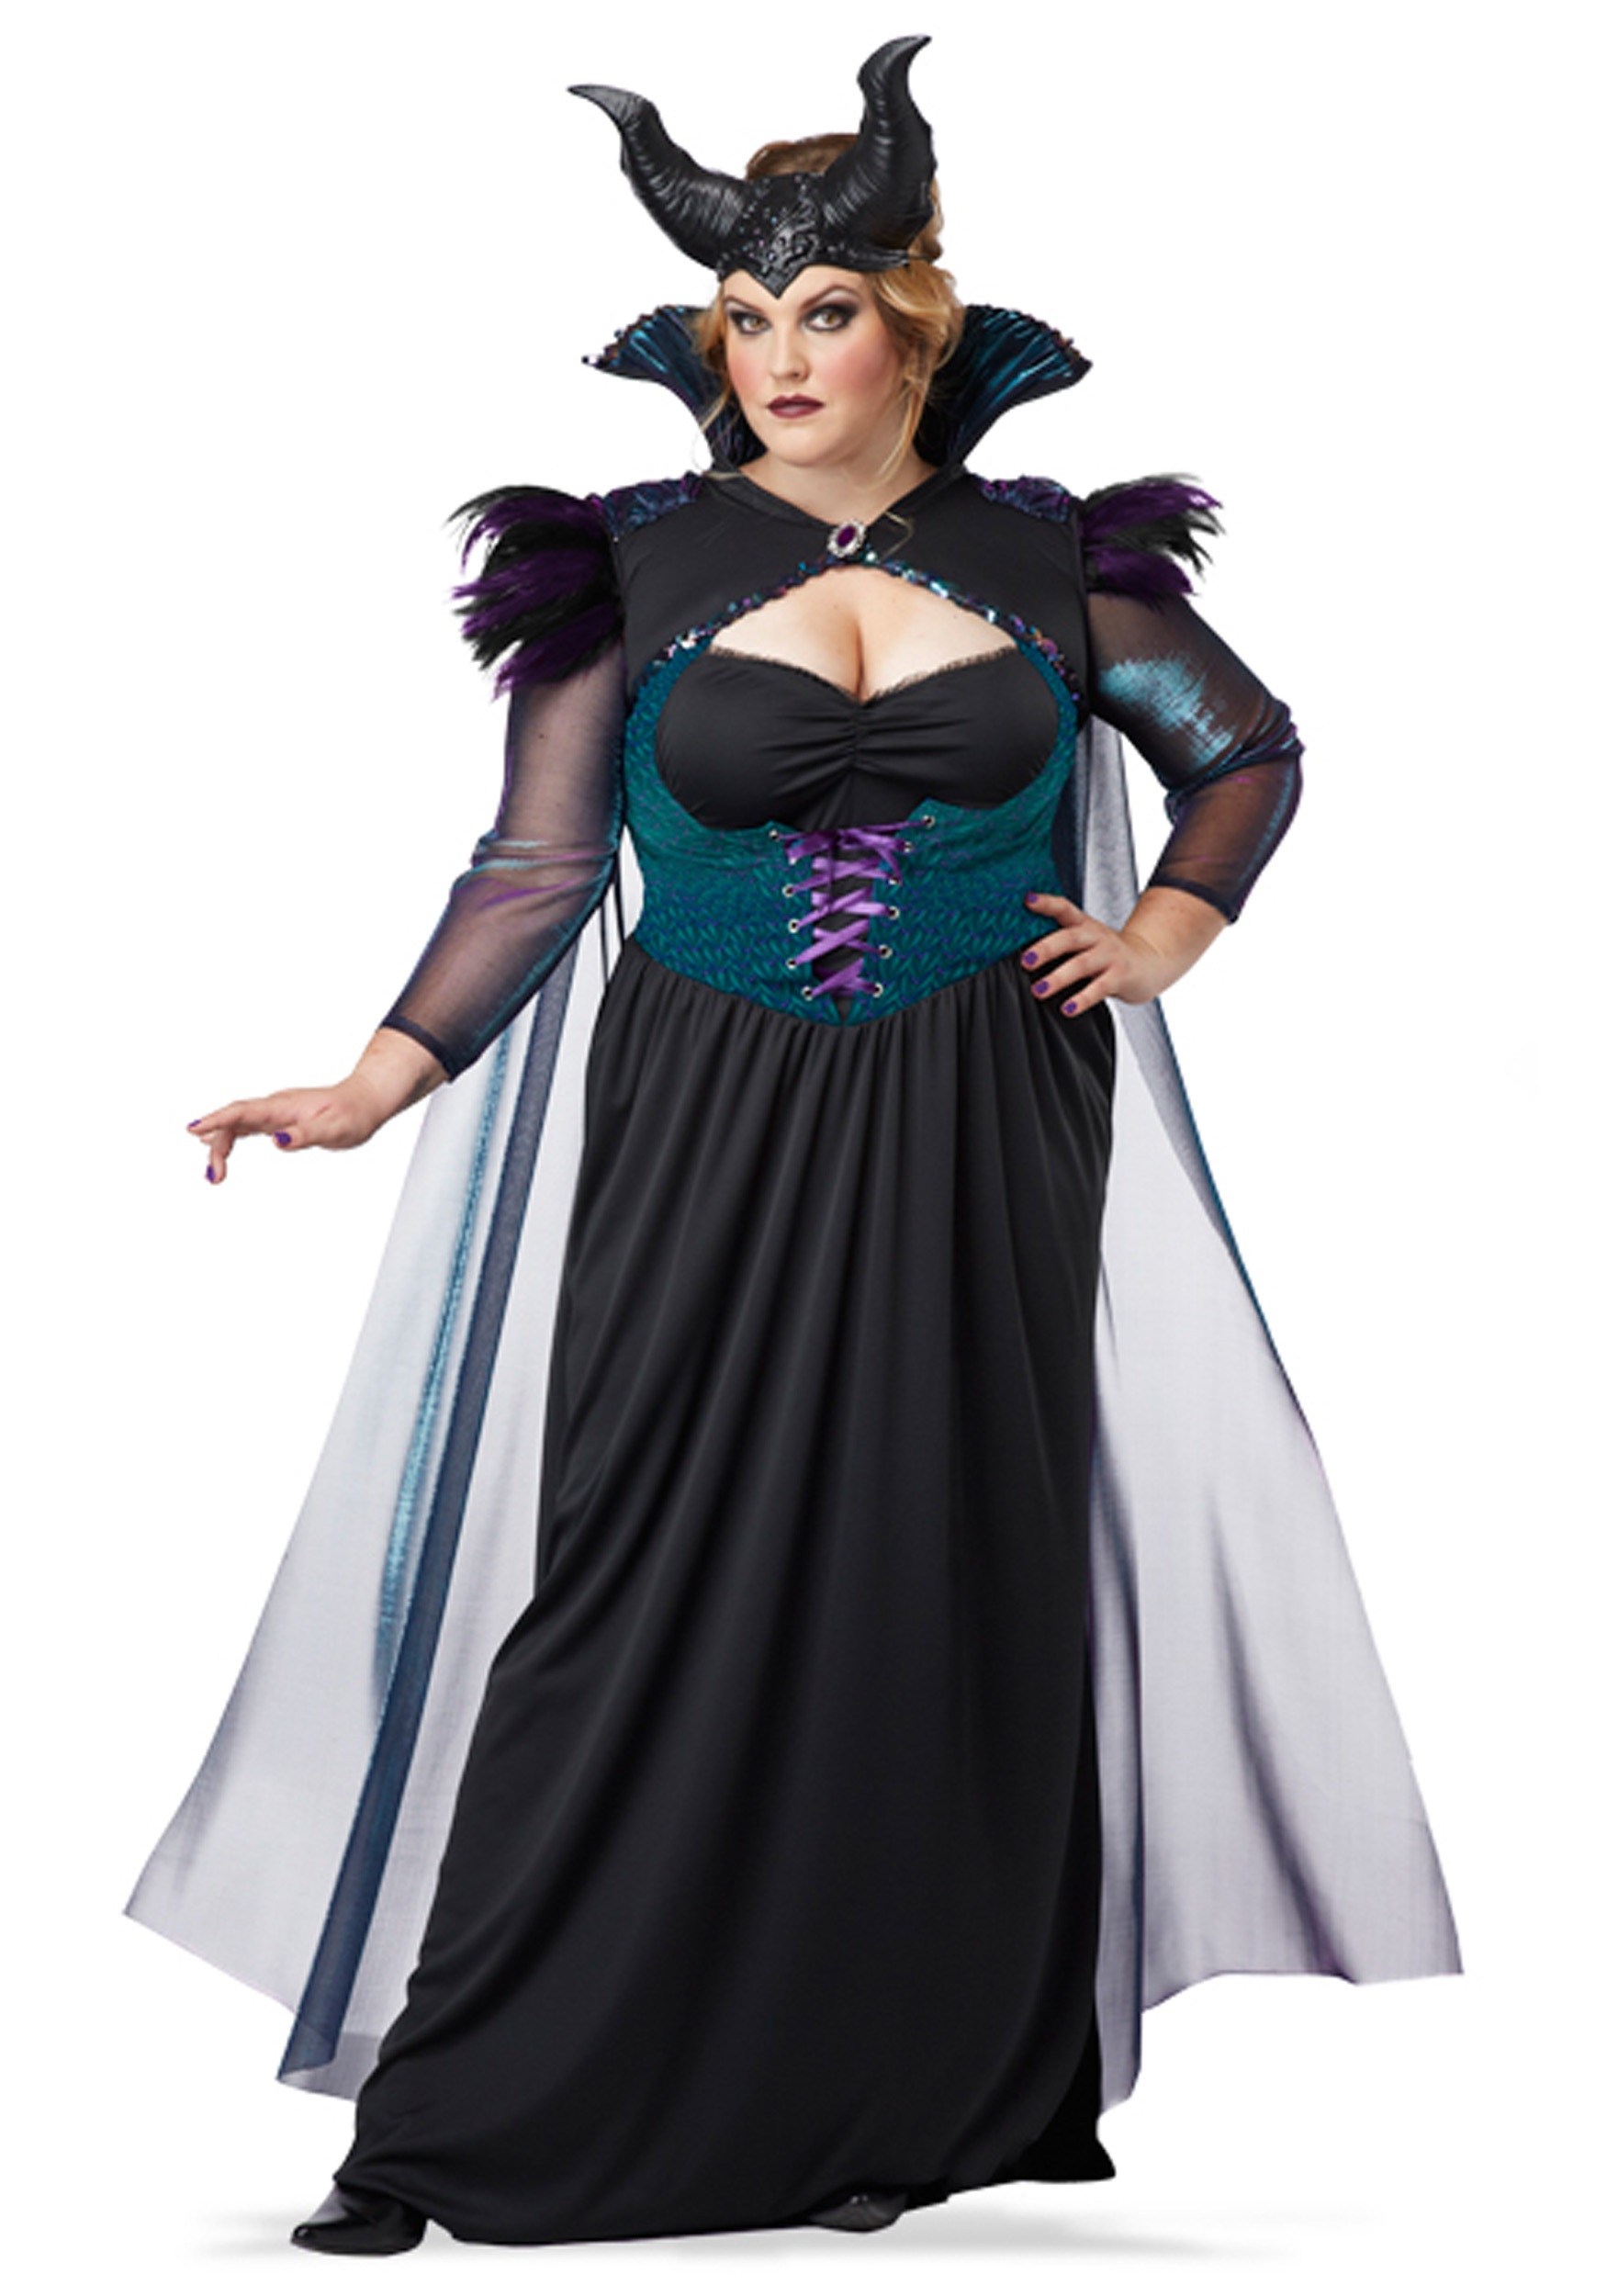 Sorceress Costume Accessories Sorceress Costume